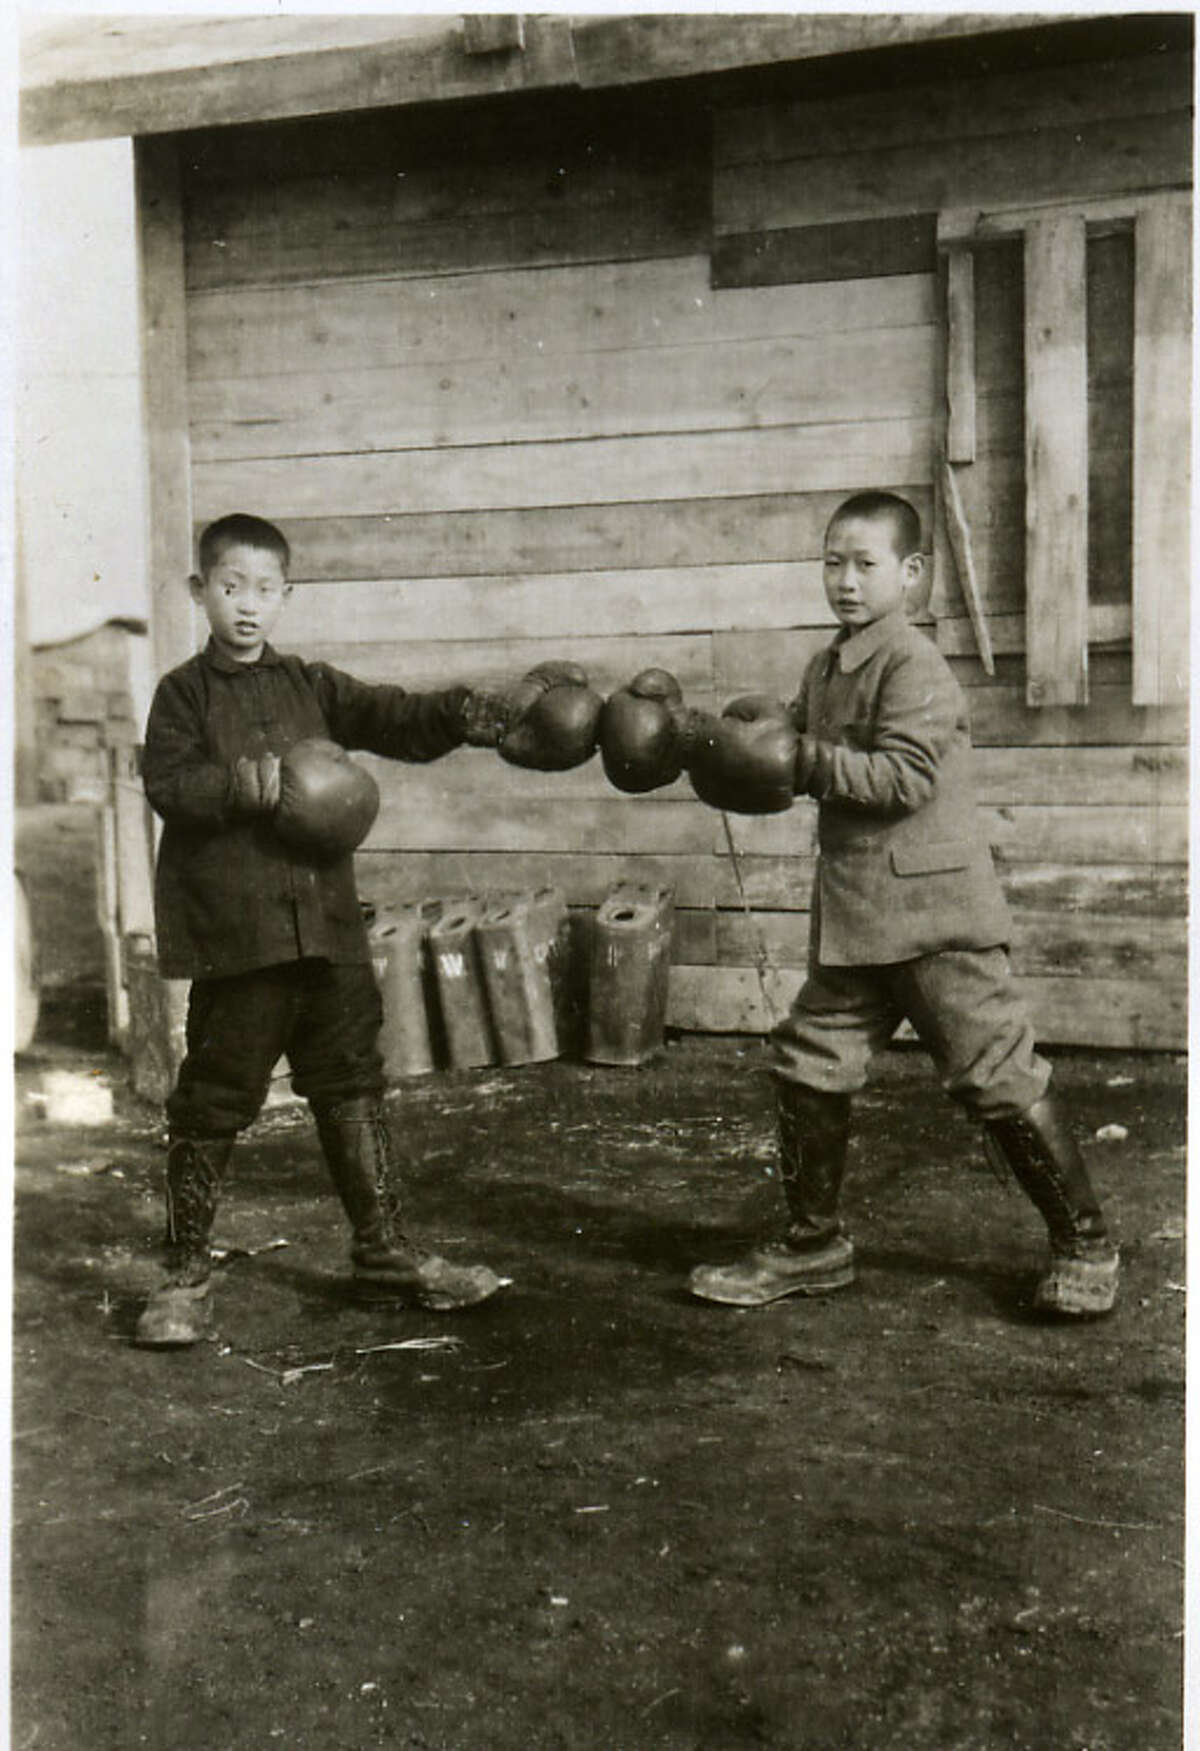 Chinese boys practice boxing with gloves and lessons given to them by U.S. Marines in the fall of 1945. Ed Bloch of Latham gave the order to open fire and destroy a mud-hut village near Han Ku. (Photo courtesy of Ed Bloch/Times Union archive)